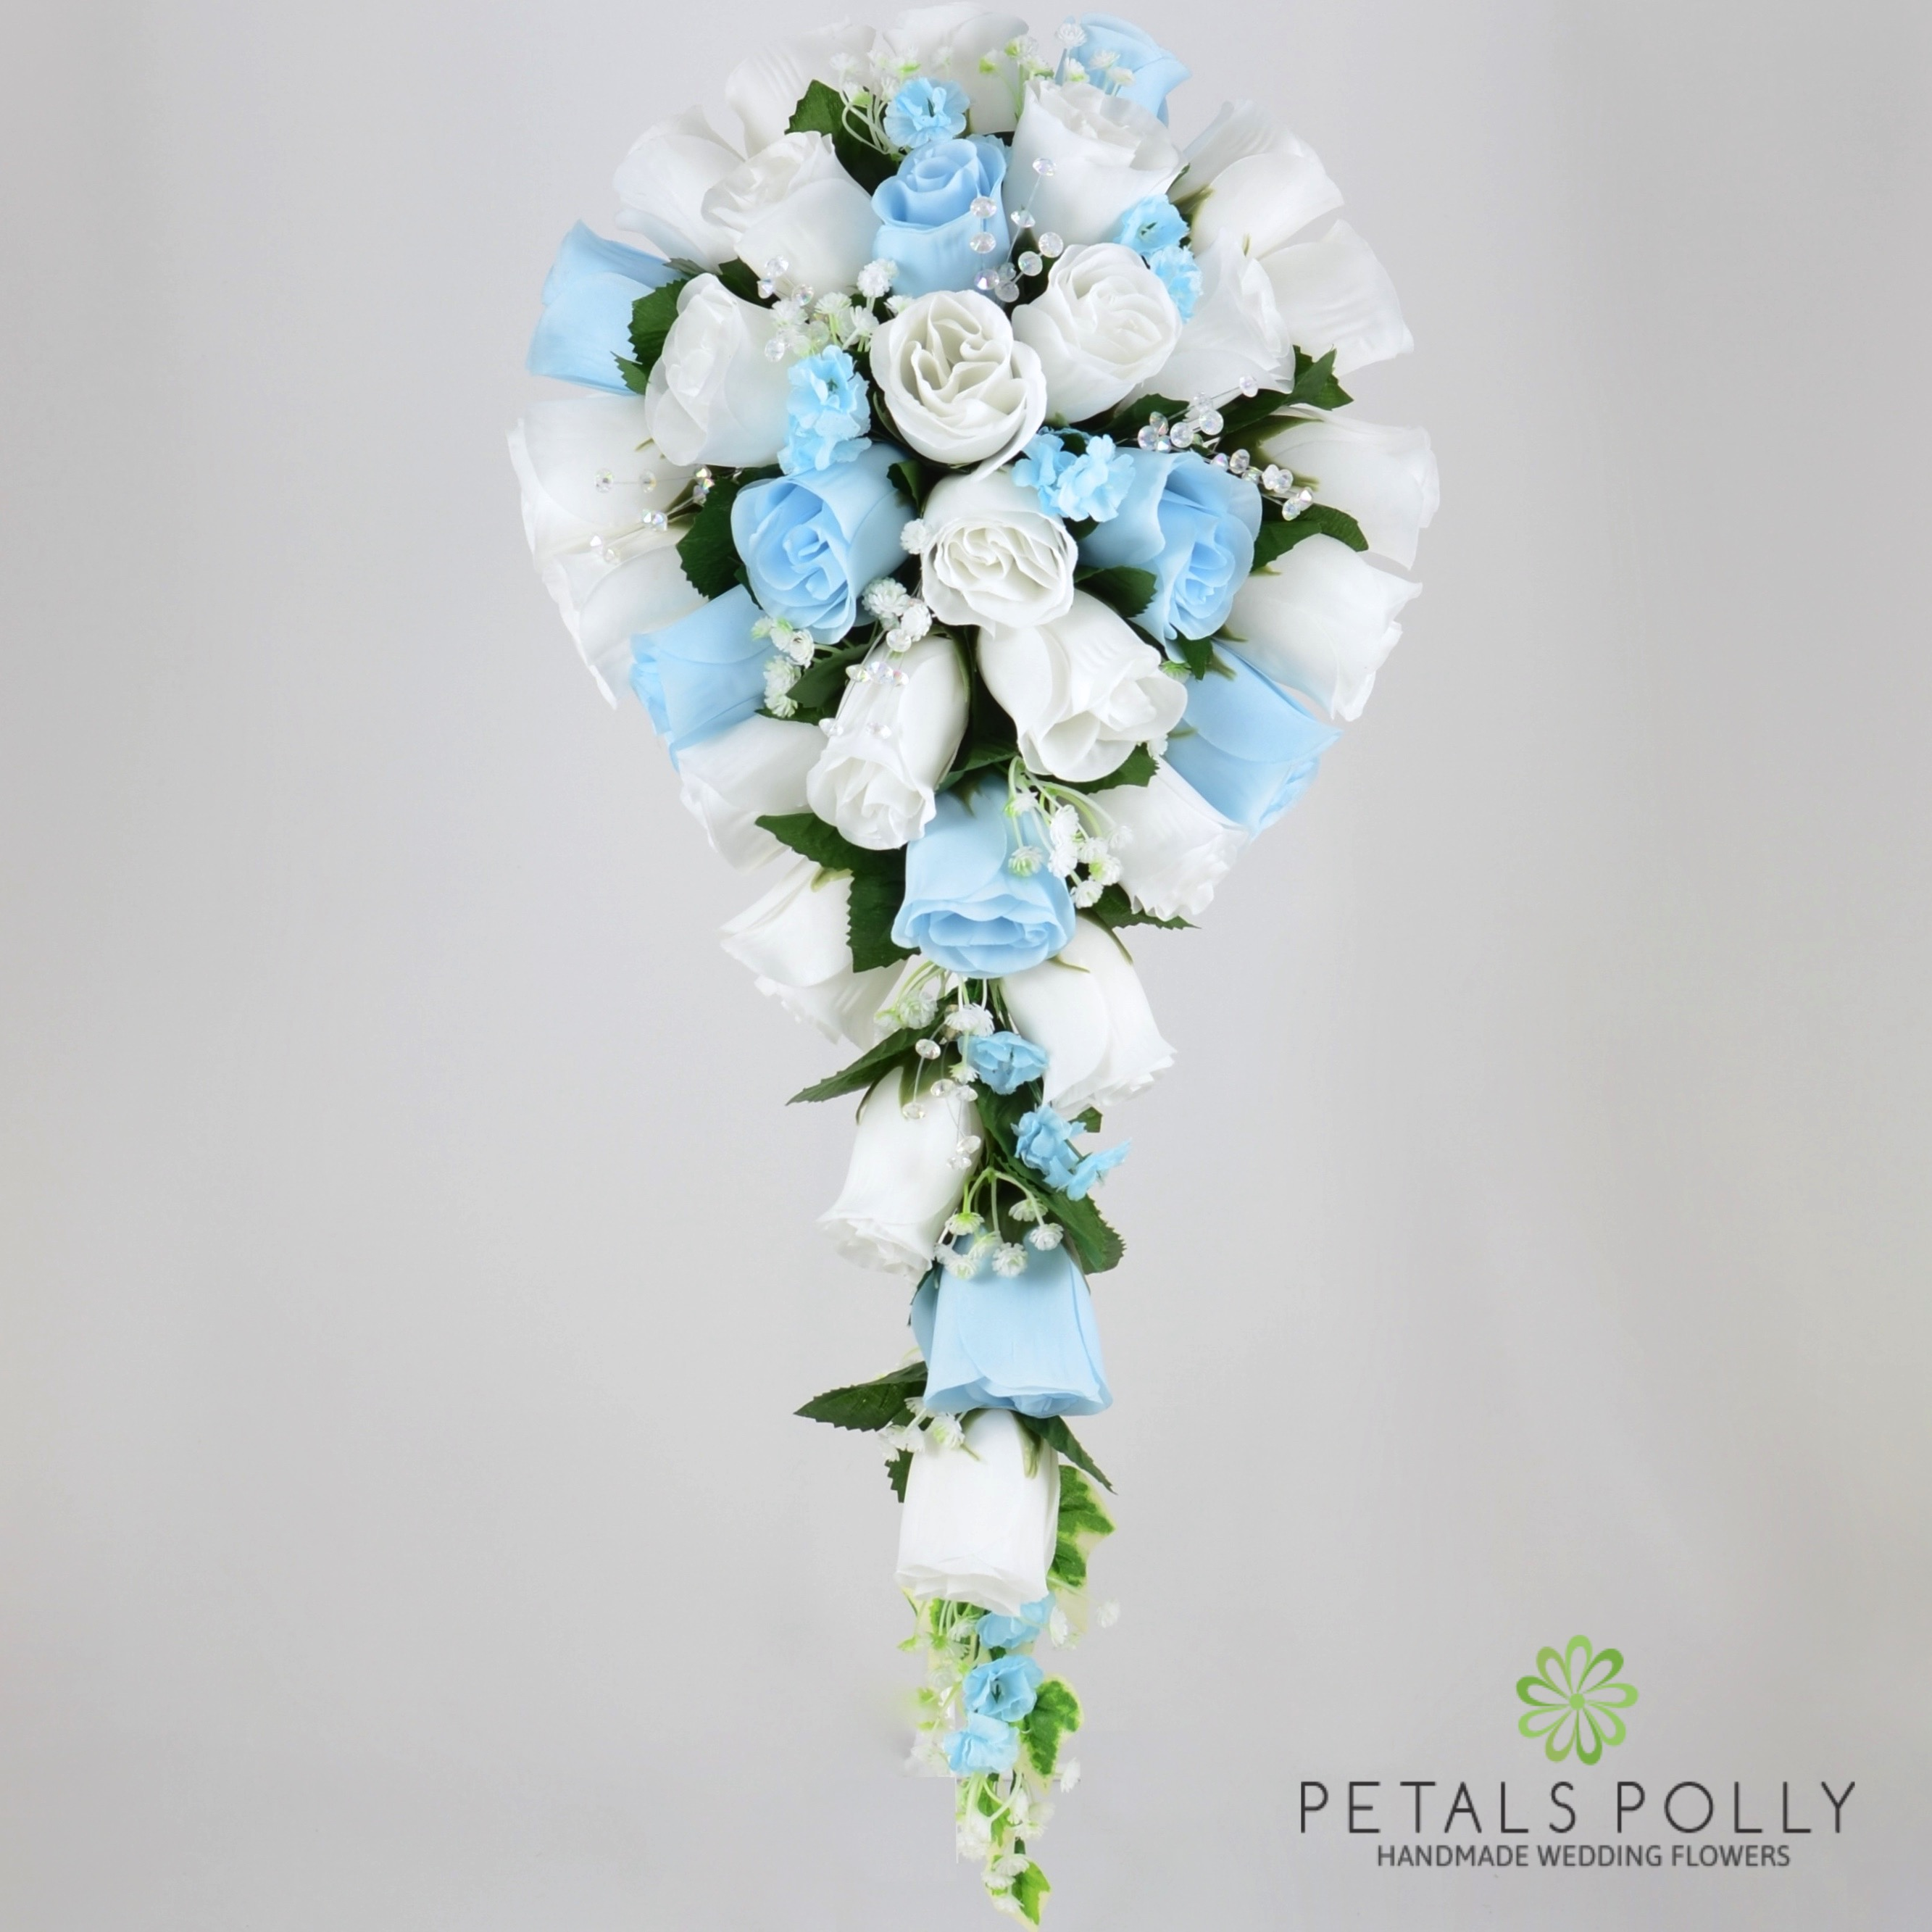 Artificial Wedding Flowers Hand Made By Petals Polly White Calla